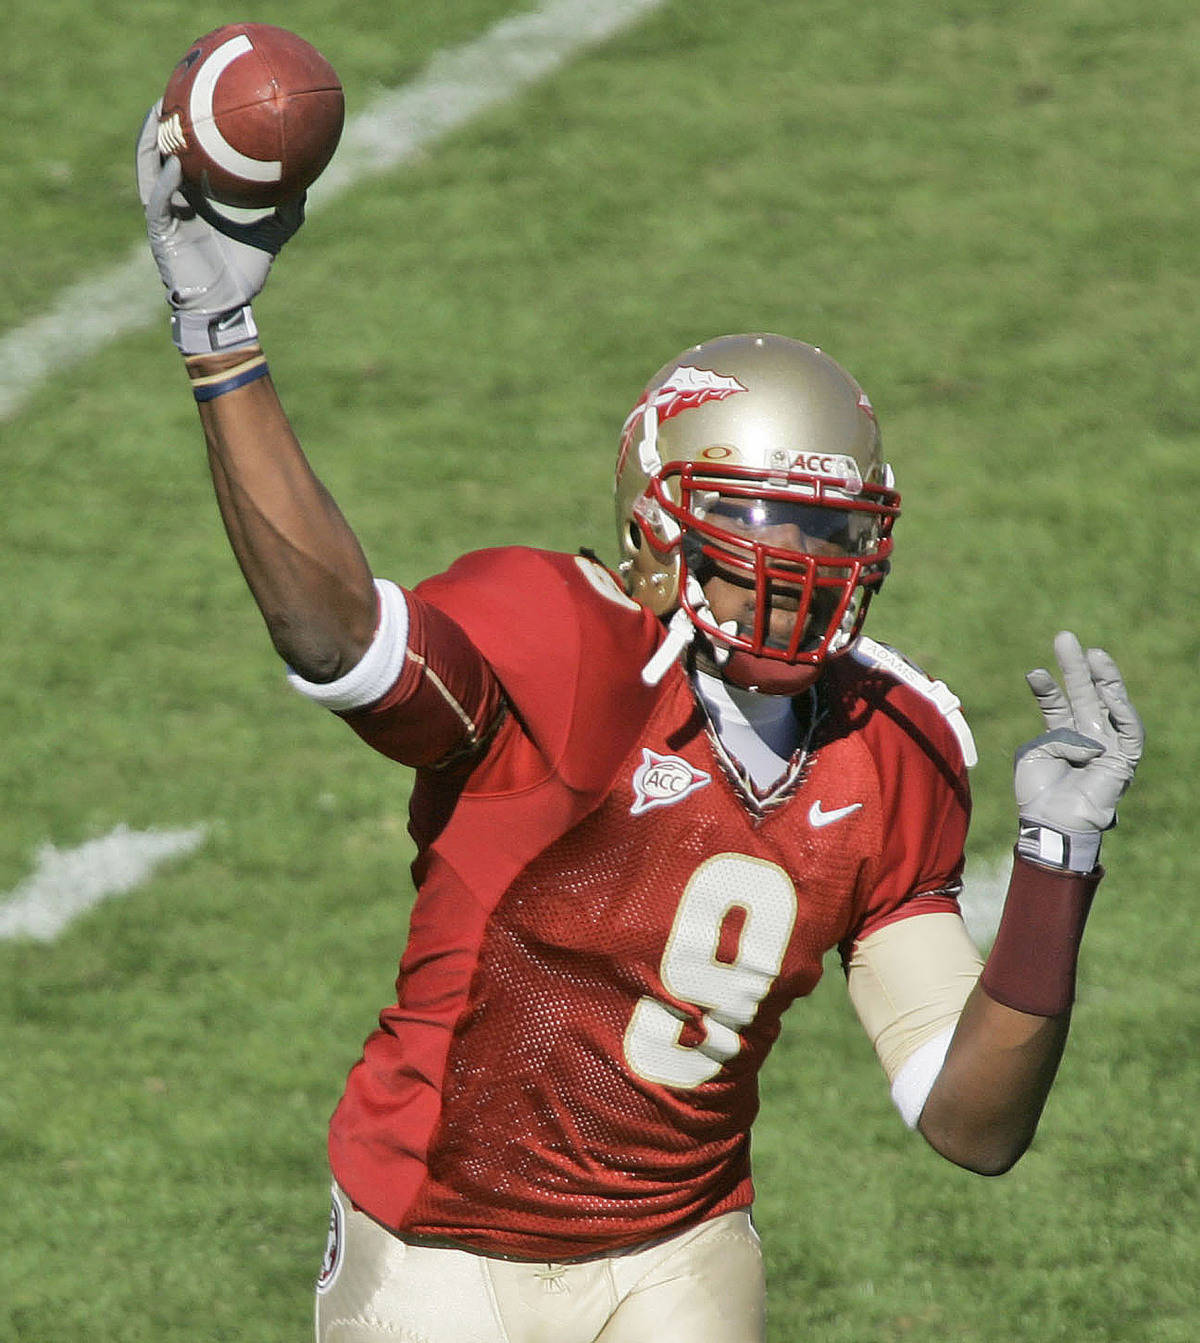 Florida State quarterback Xavier Lee throws pass against Virginia during the third-quarter of a college football game, Saturday, Nov. 4, 2006, in Tallahassee, Fla. Florida State won 33-0. (AP Photo/Phil Coale)